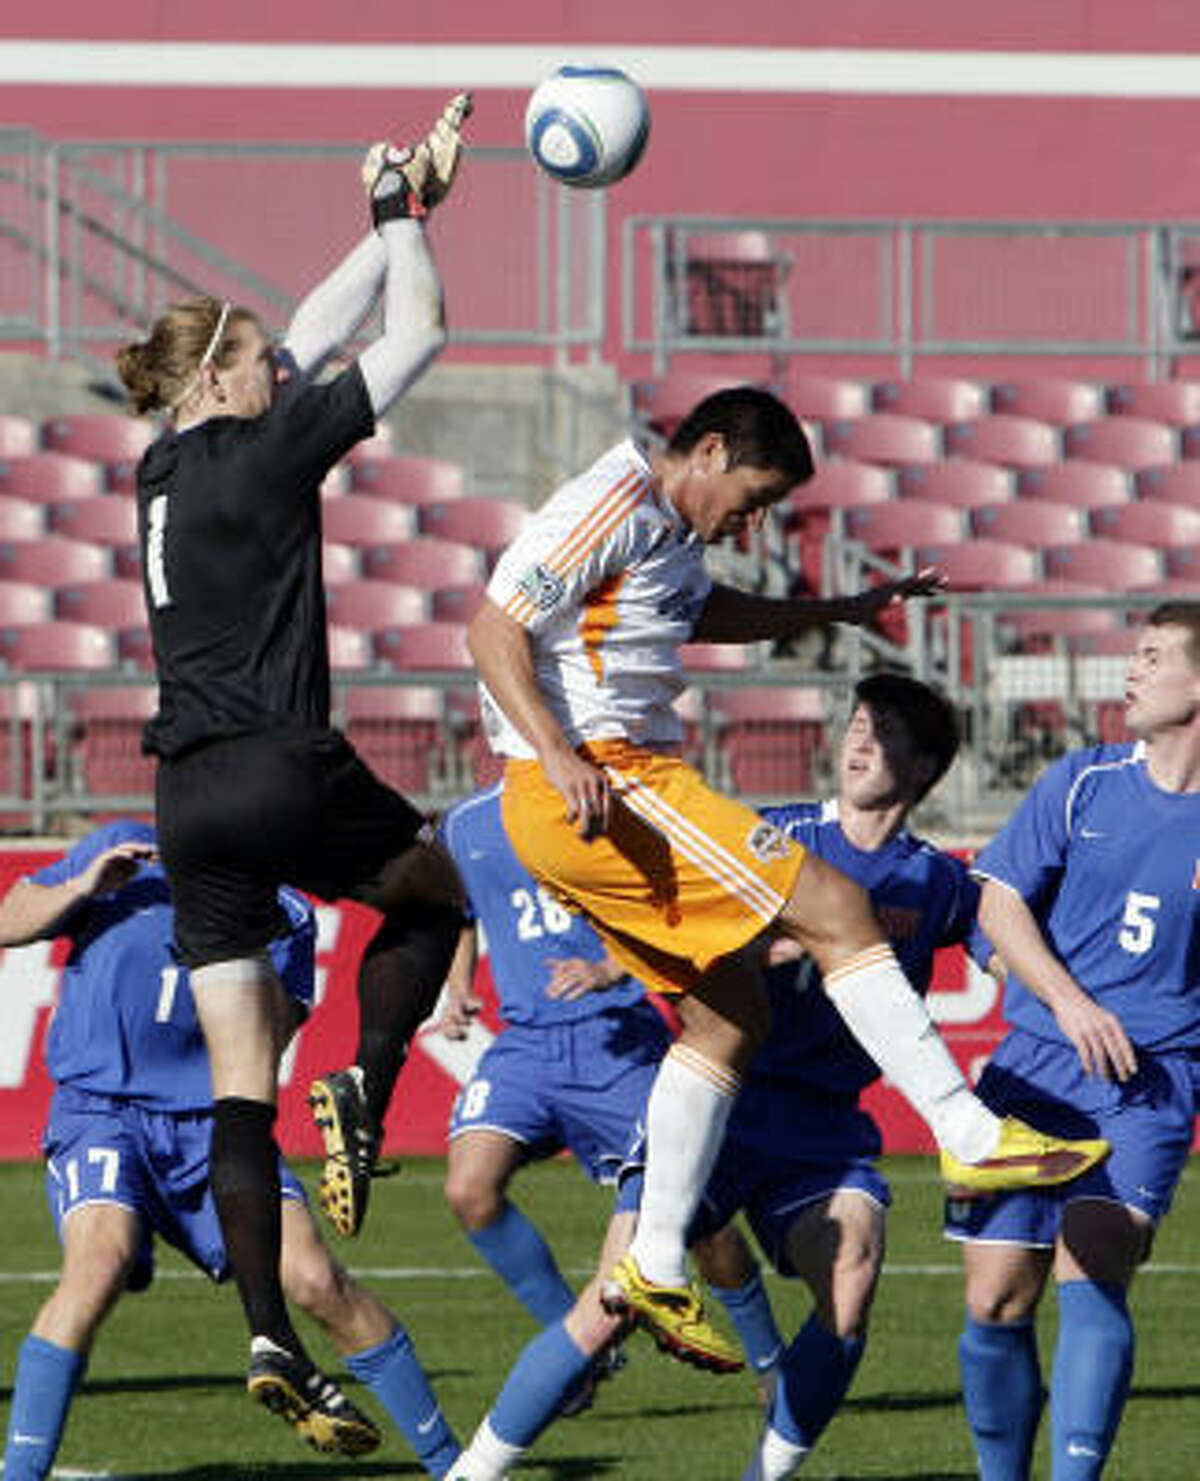 HBU goalkeeper Chris Dodd punches the ball away before the Dynamo's Brian Ching can get a head on it.